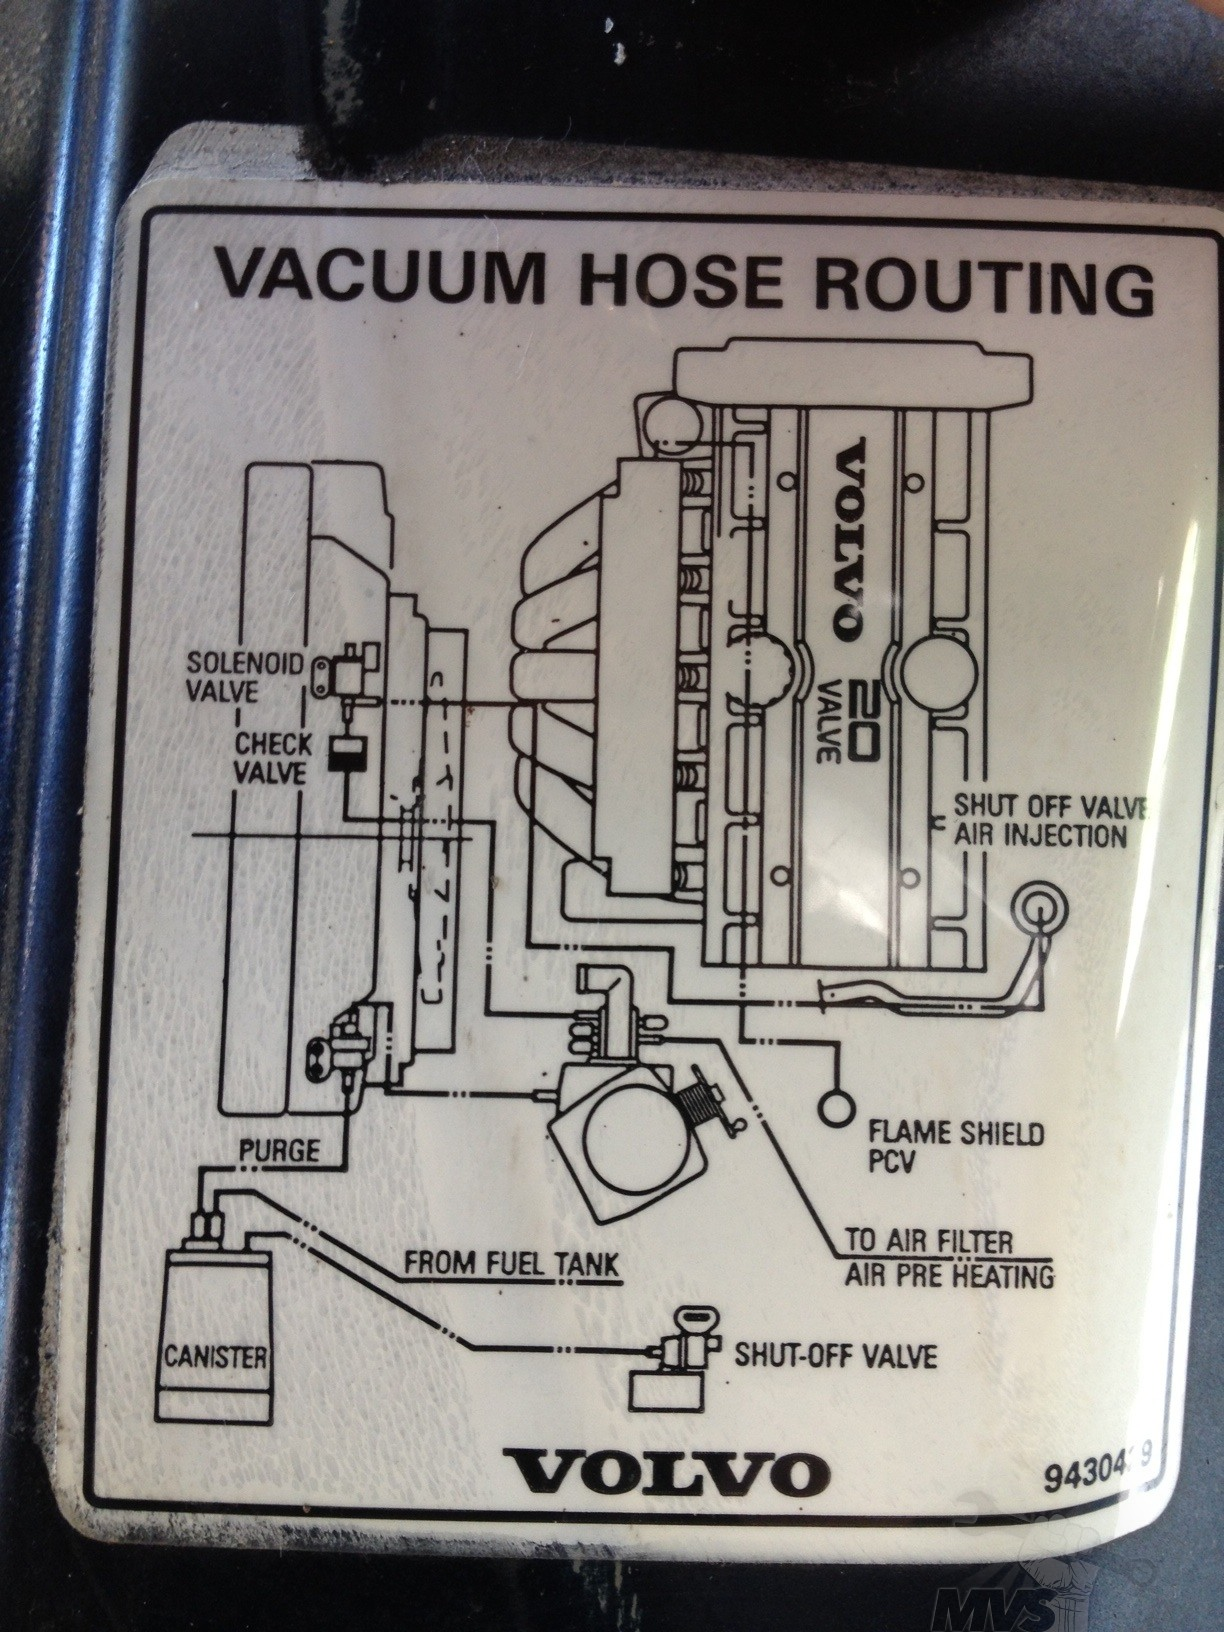 Vacuum Hose Routing Nonturbo on 2000 Volvo C70